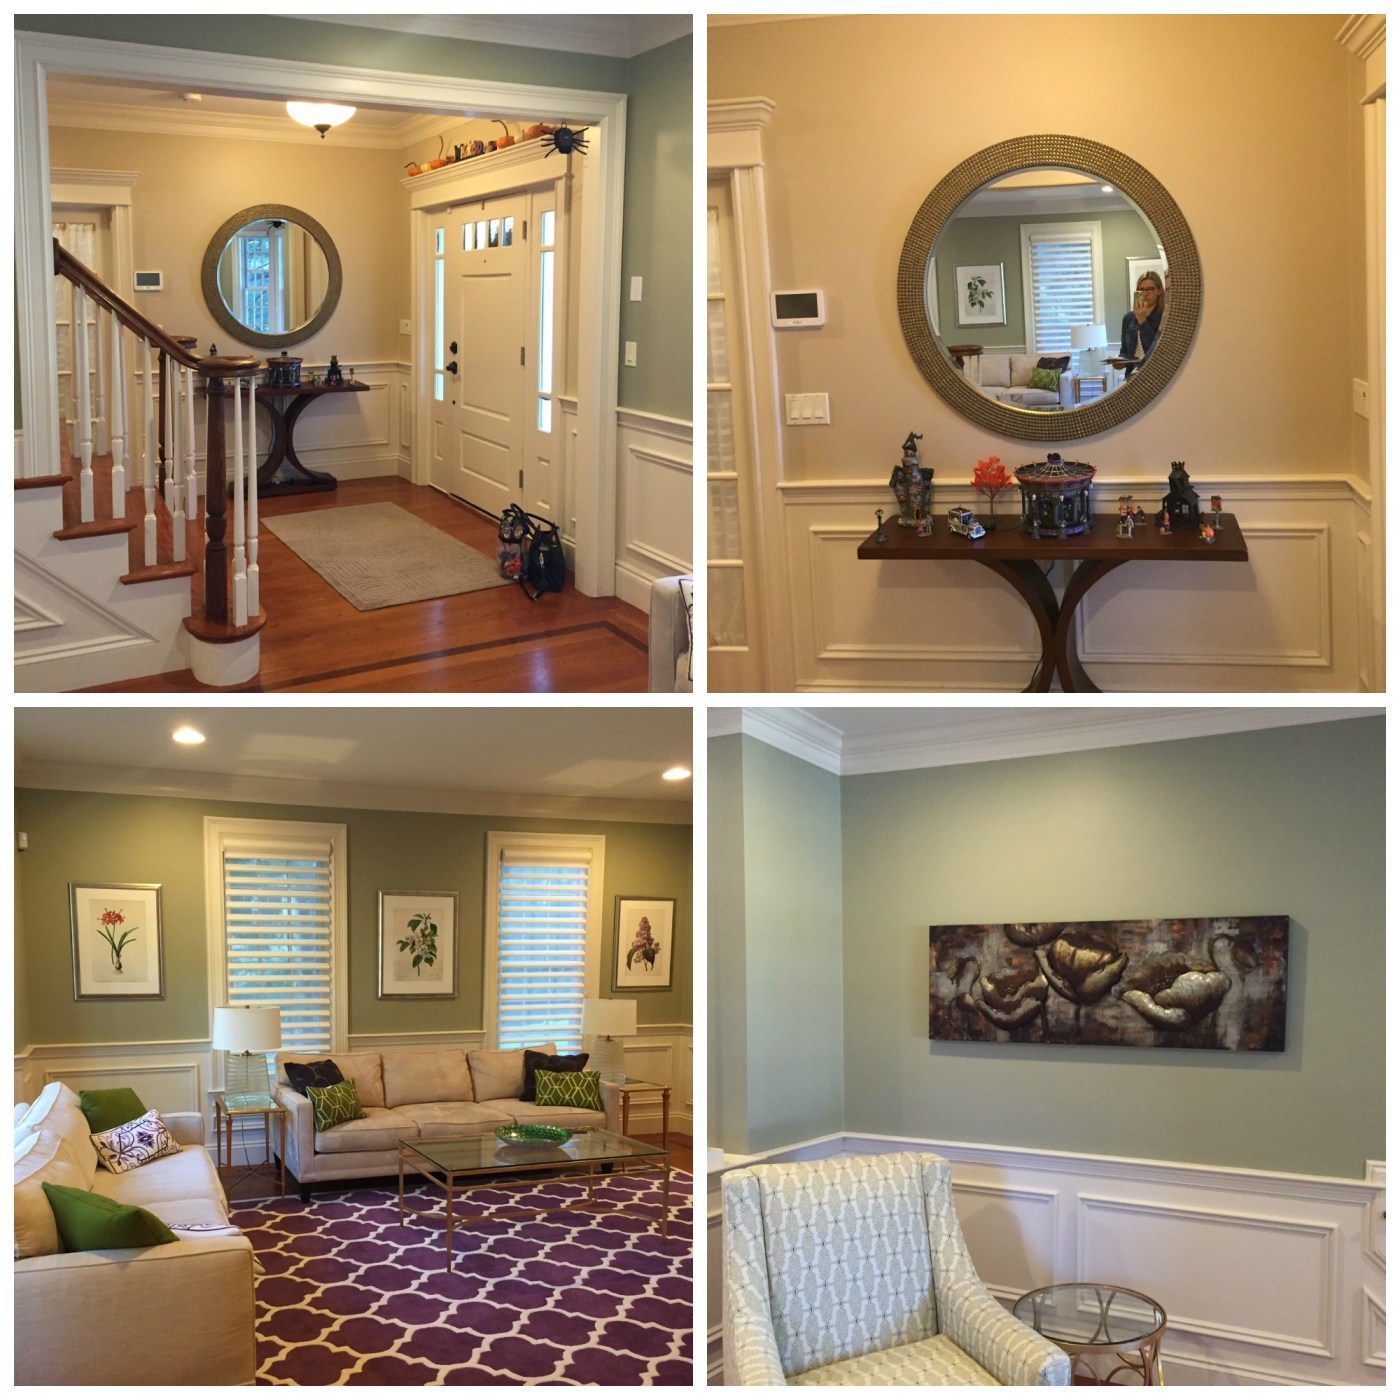 Project Reveal: Lexington Green   Kelly Rogers Interiors   Interiors for Families